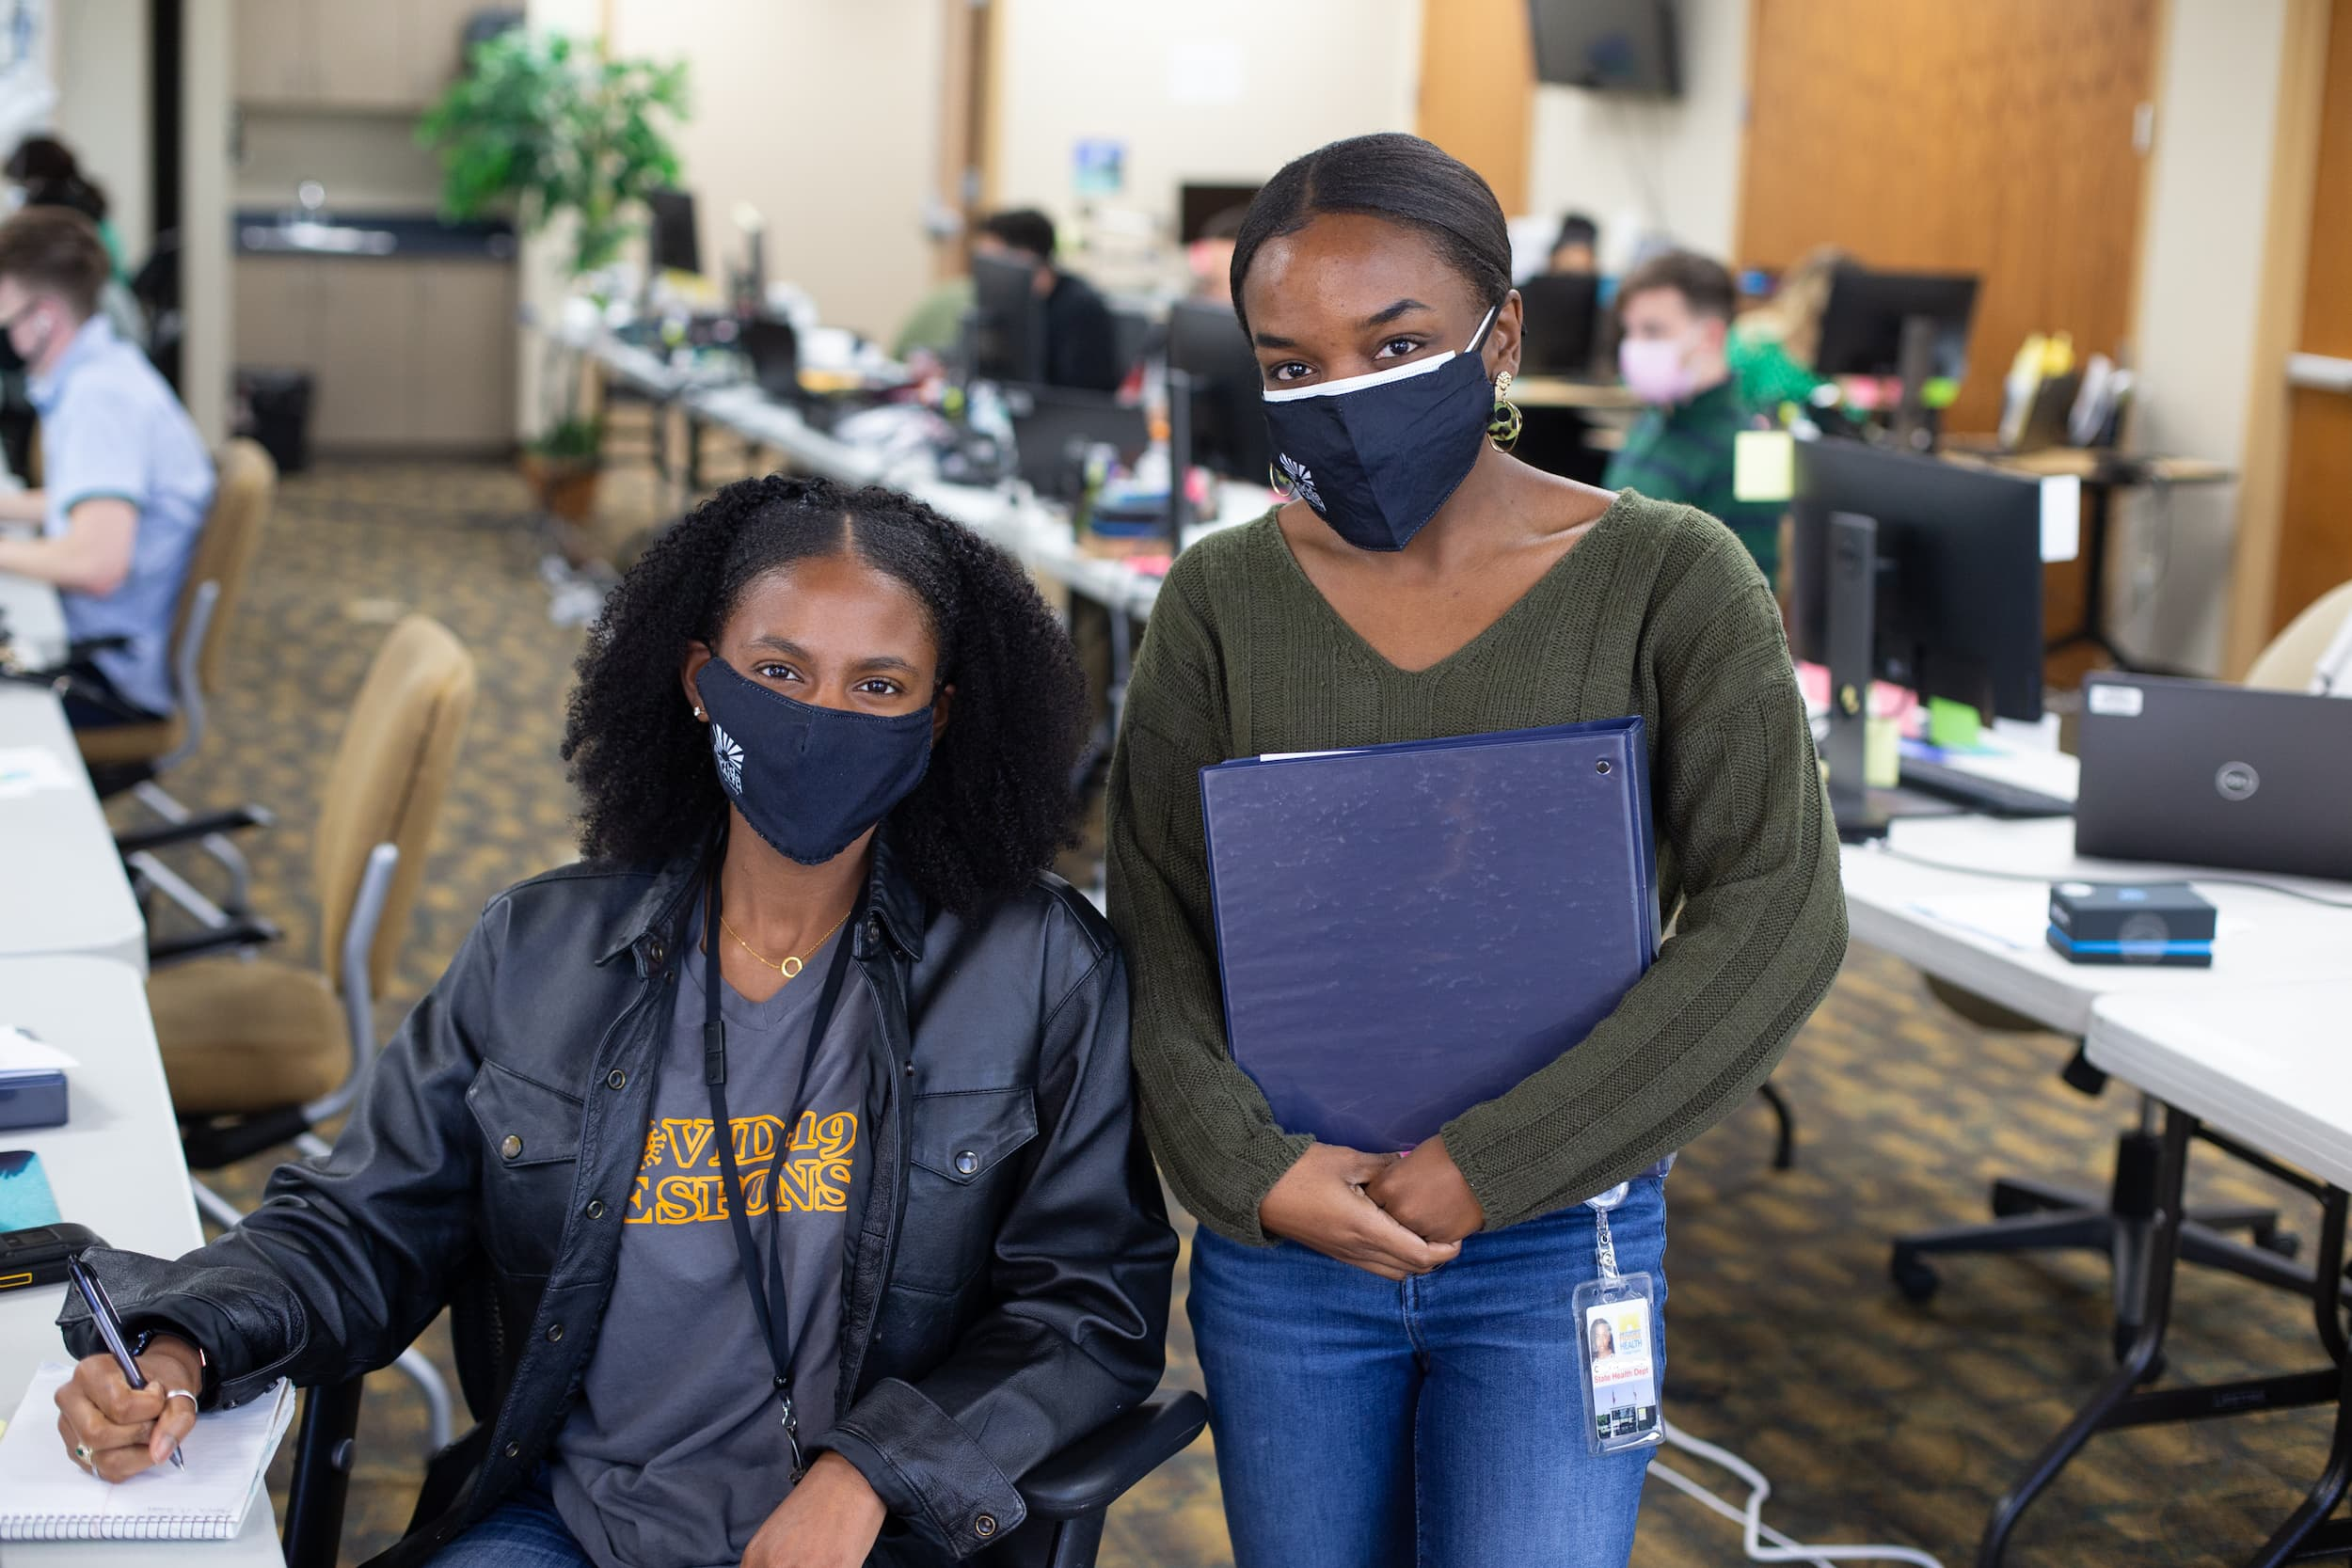 Two women wearing masks and holding a work binder